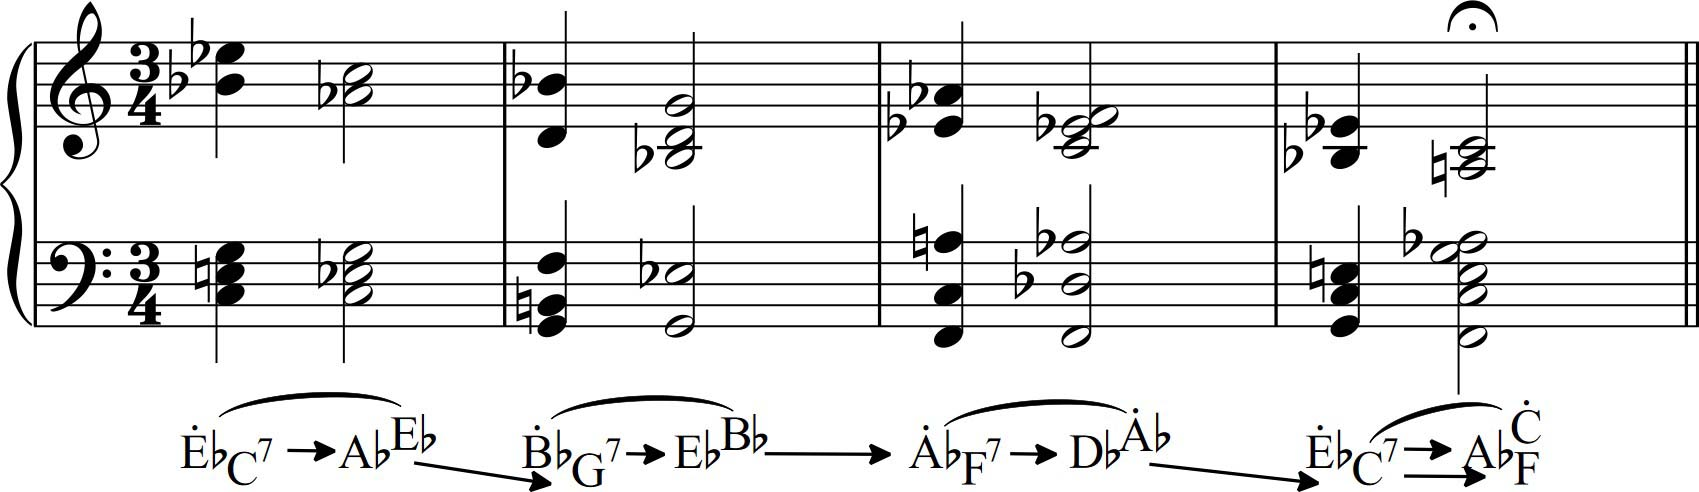 Examples of harmonic progressions with homotonic relaxions the members of the cluster chords family are very dissonant because they have two functional fundamentals separated by a m2 and having only one semitone of hexwebz Choice Image